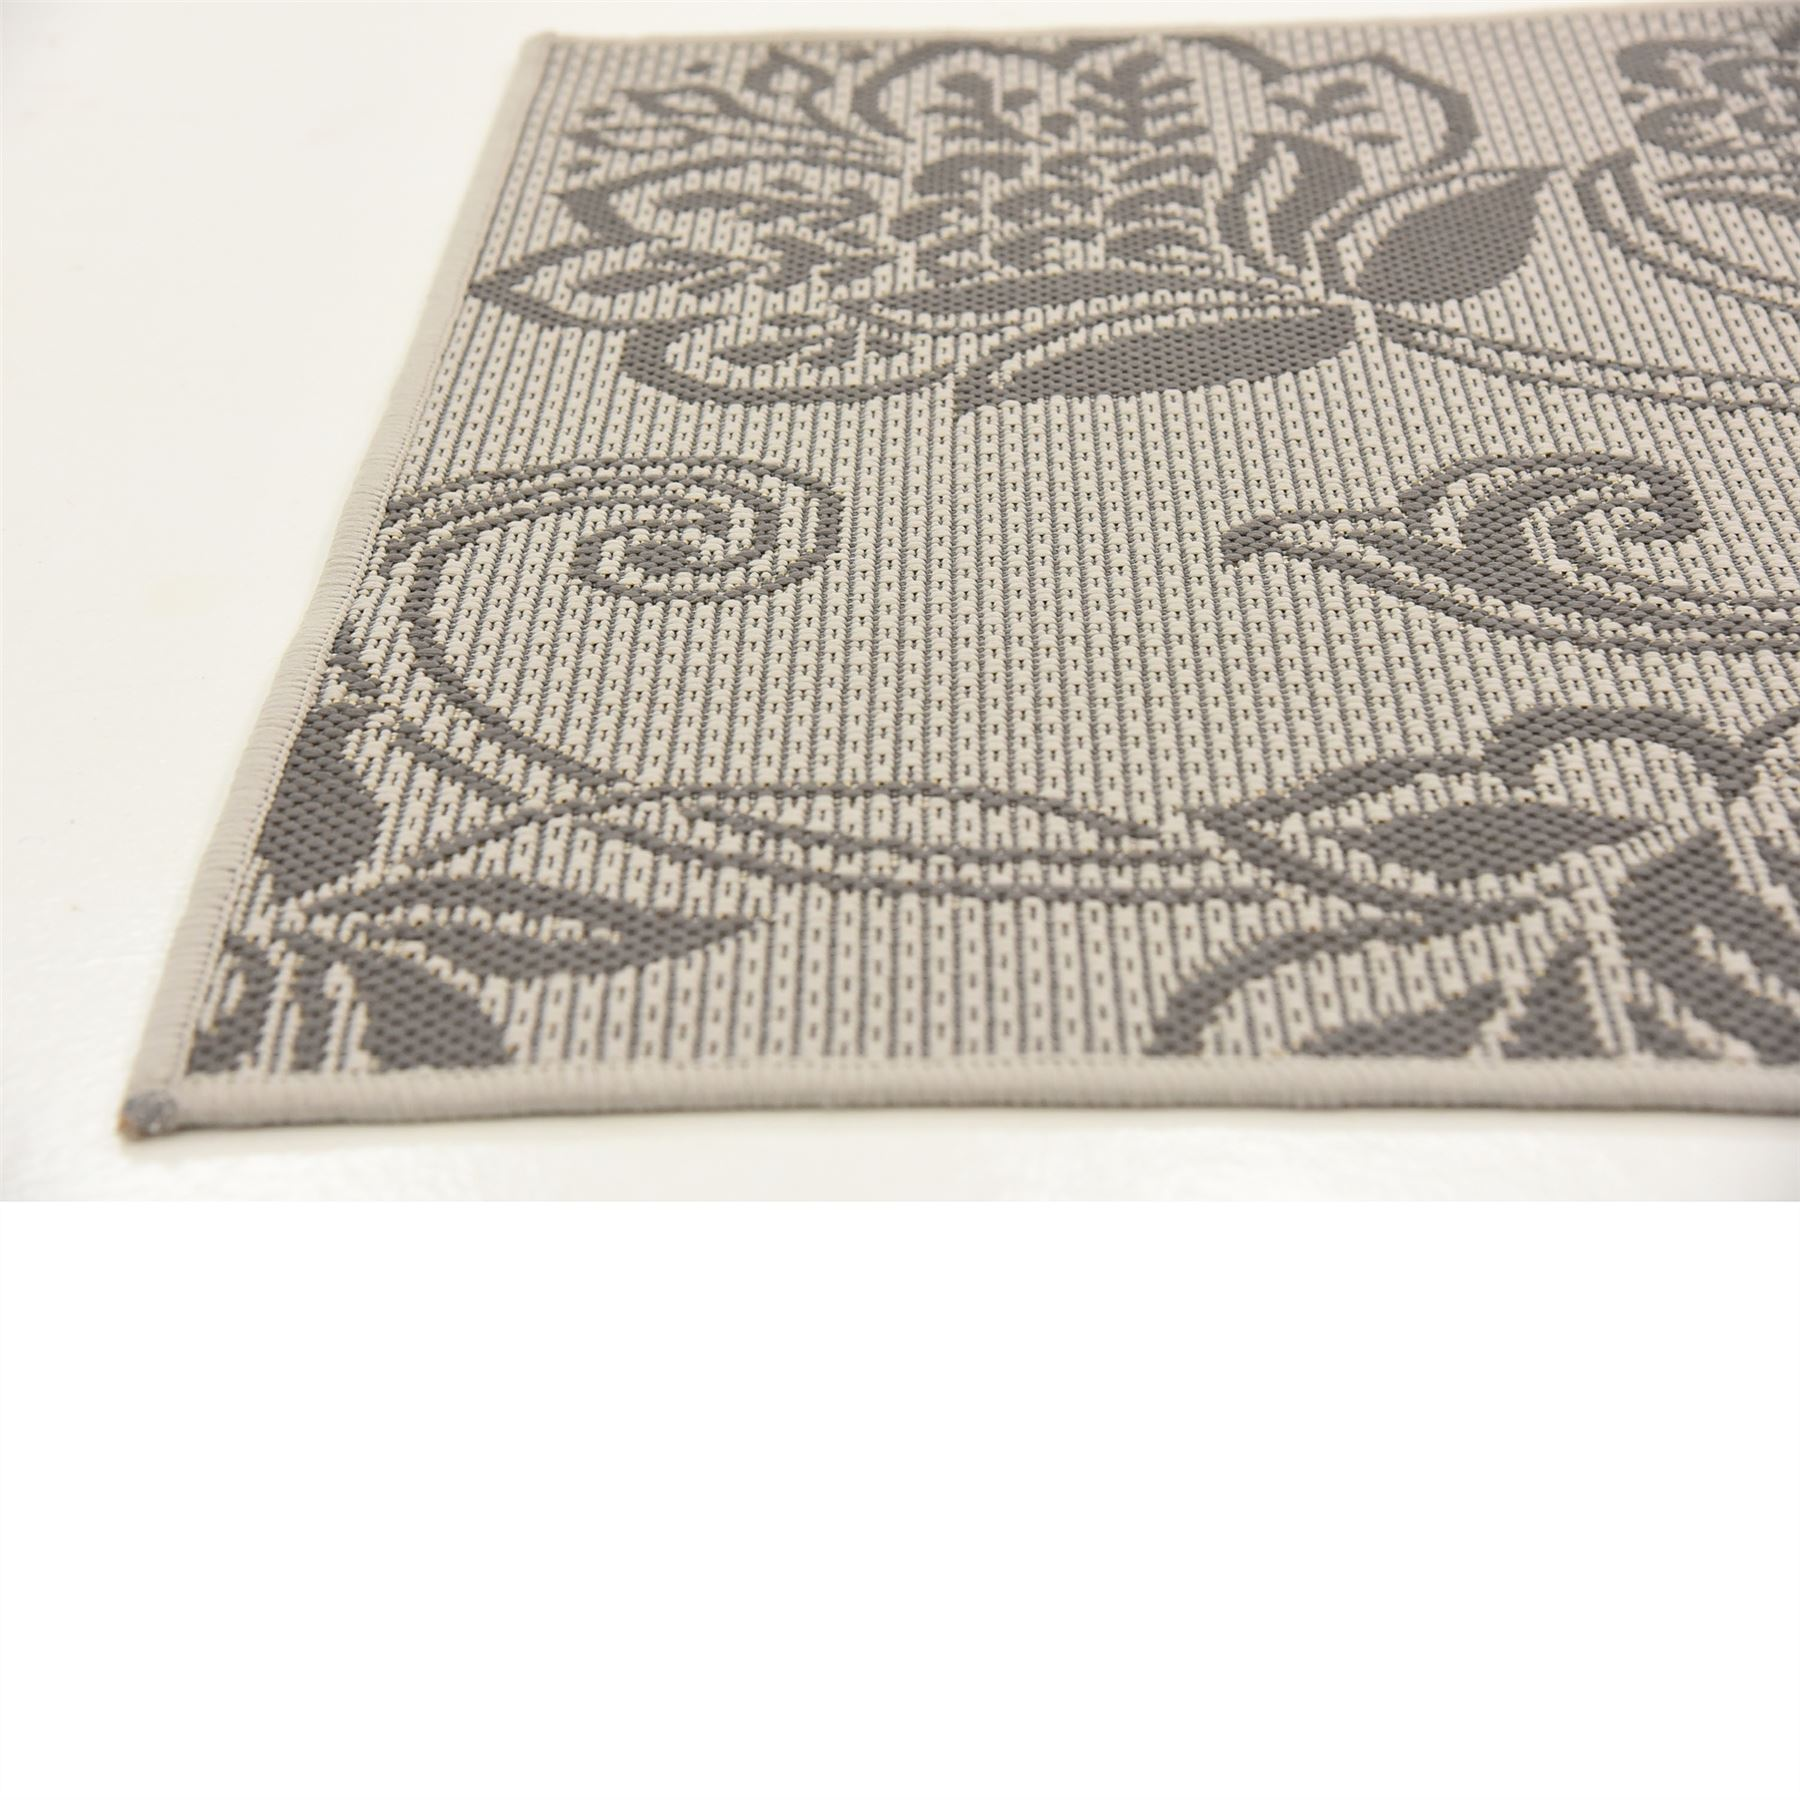 Nursery Rug Large: Modern Floral Botanical Outdoor Area Rug Contemporary Thin